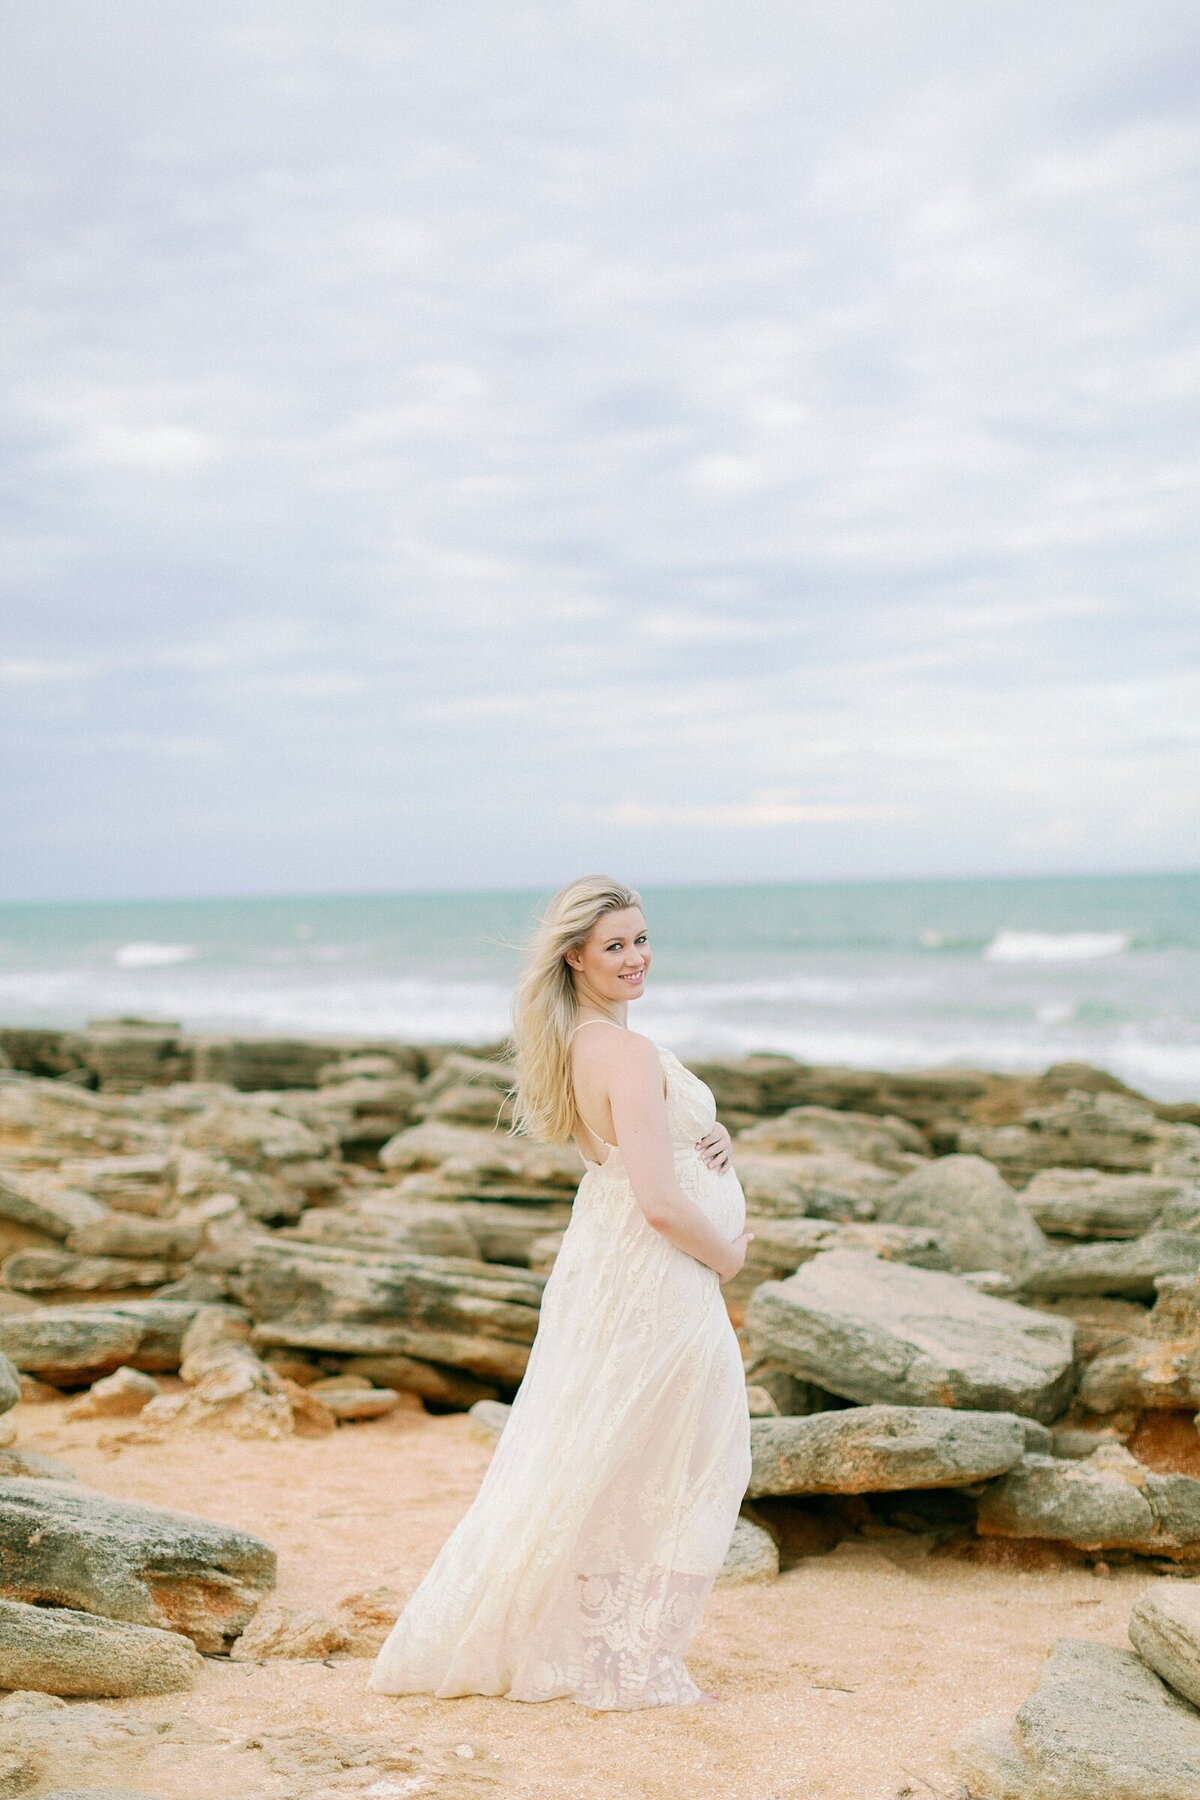 Ashley + Adrian Pamparau Washington Oaks State Park Maternity Session Photographer Casie Marie Photography-73